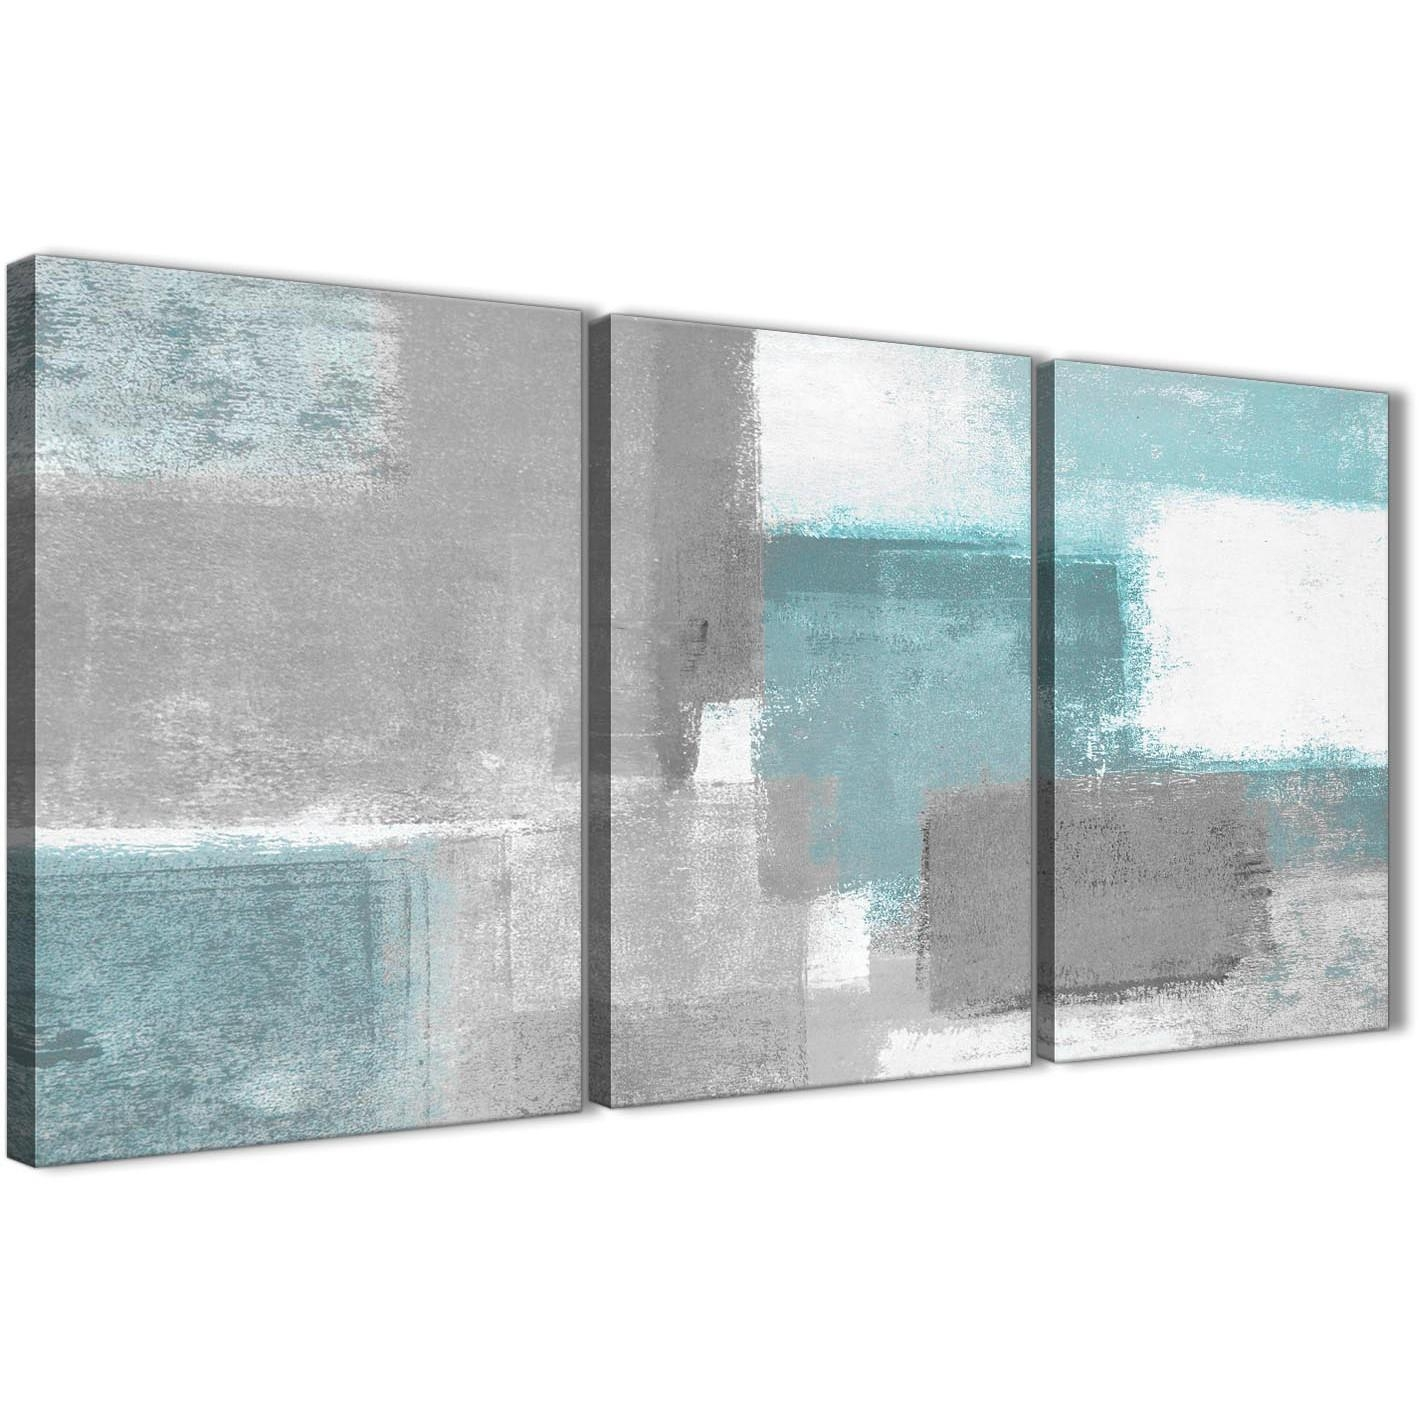 3 Panel Teal Grey Painting Living Room Canvas Wall Art Decor in Three Piece Canvas Wall Art